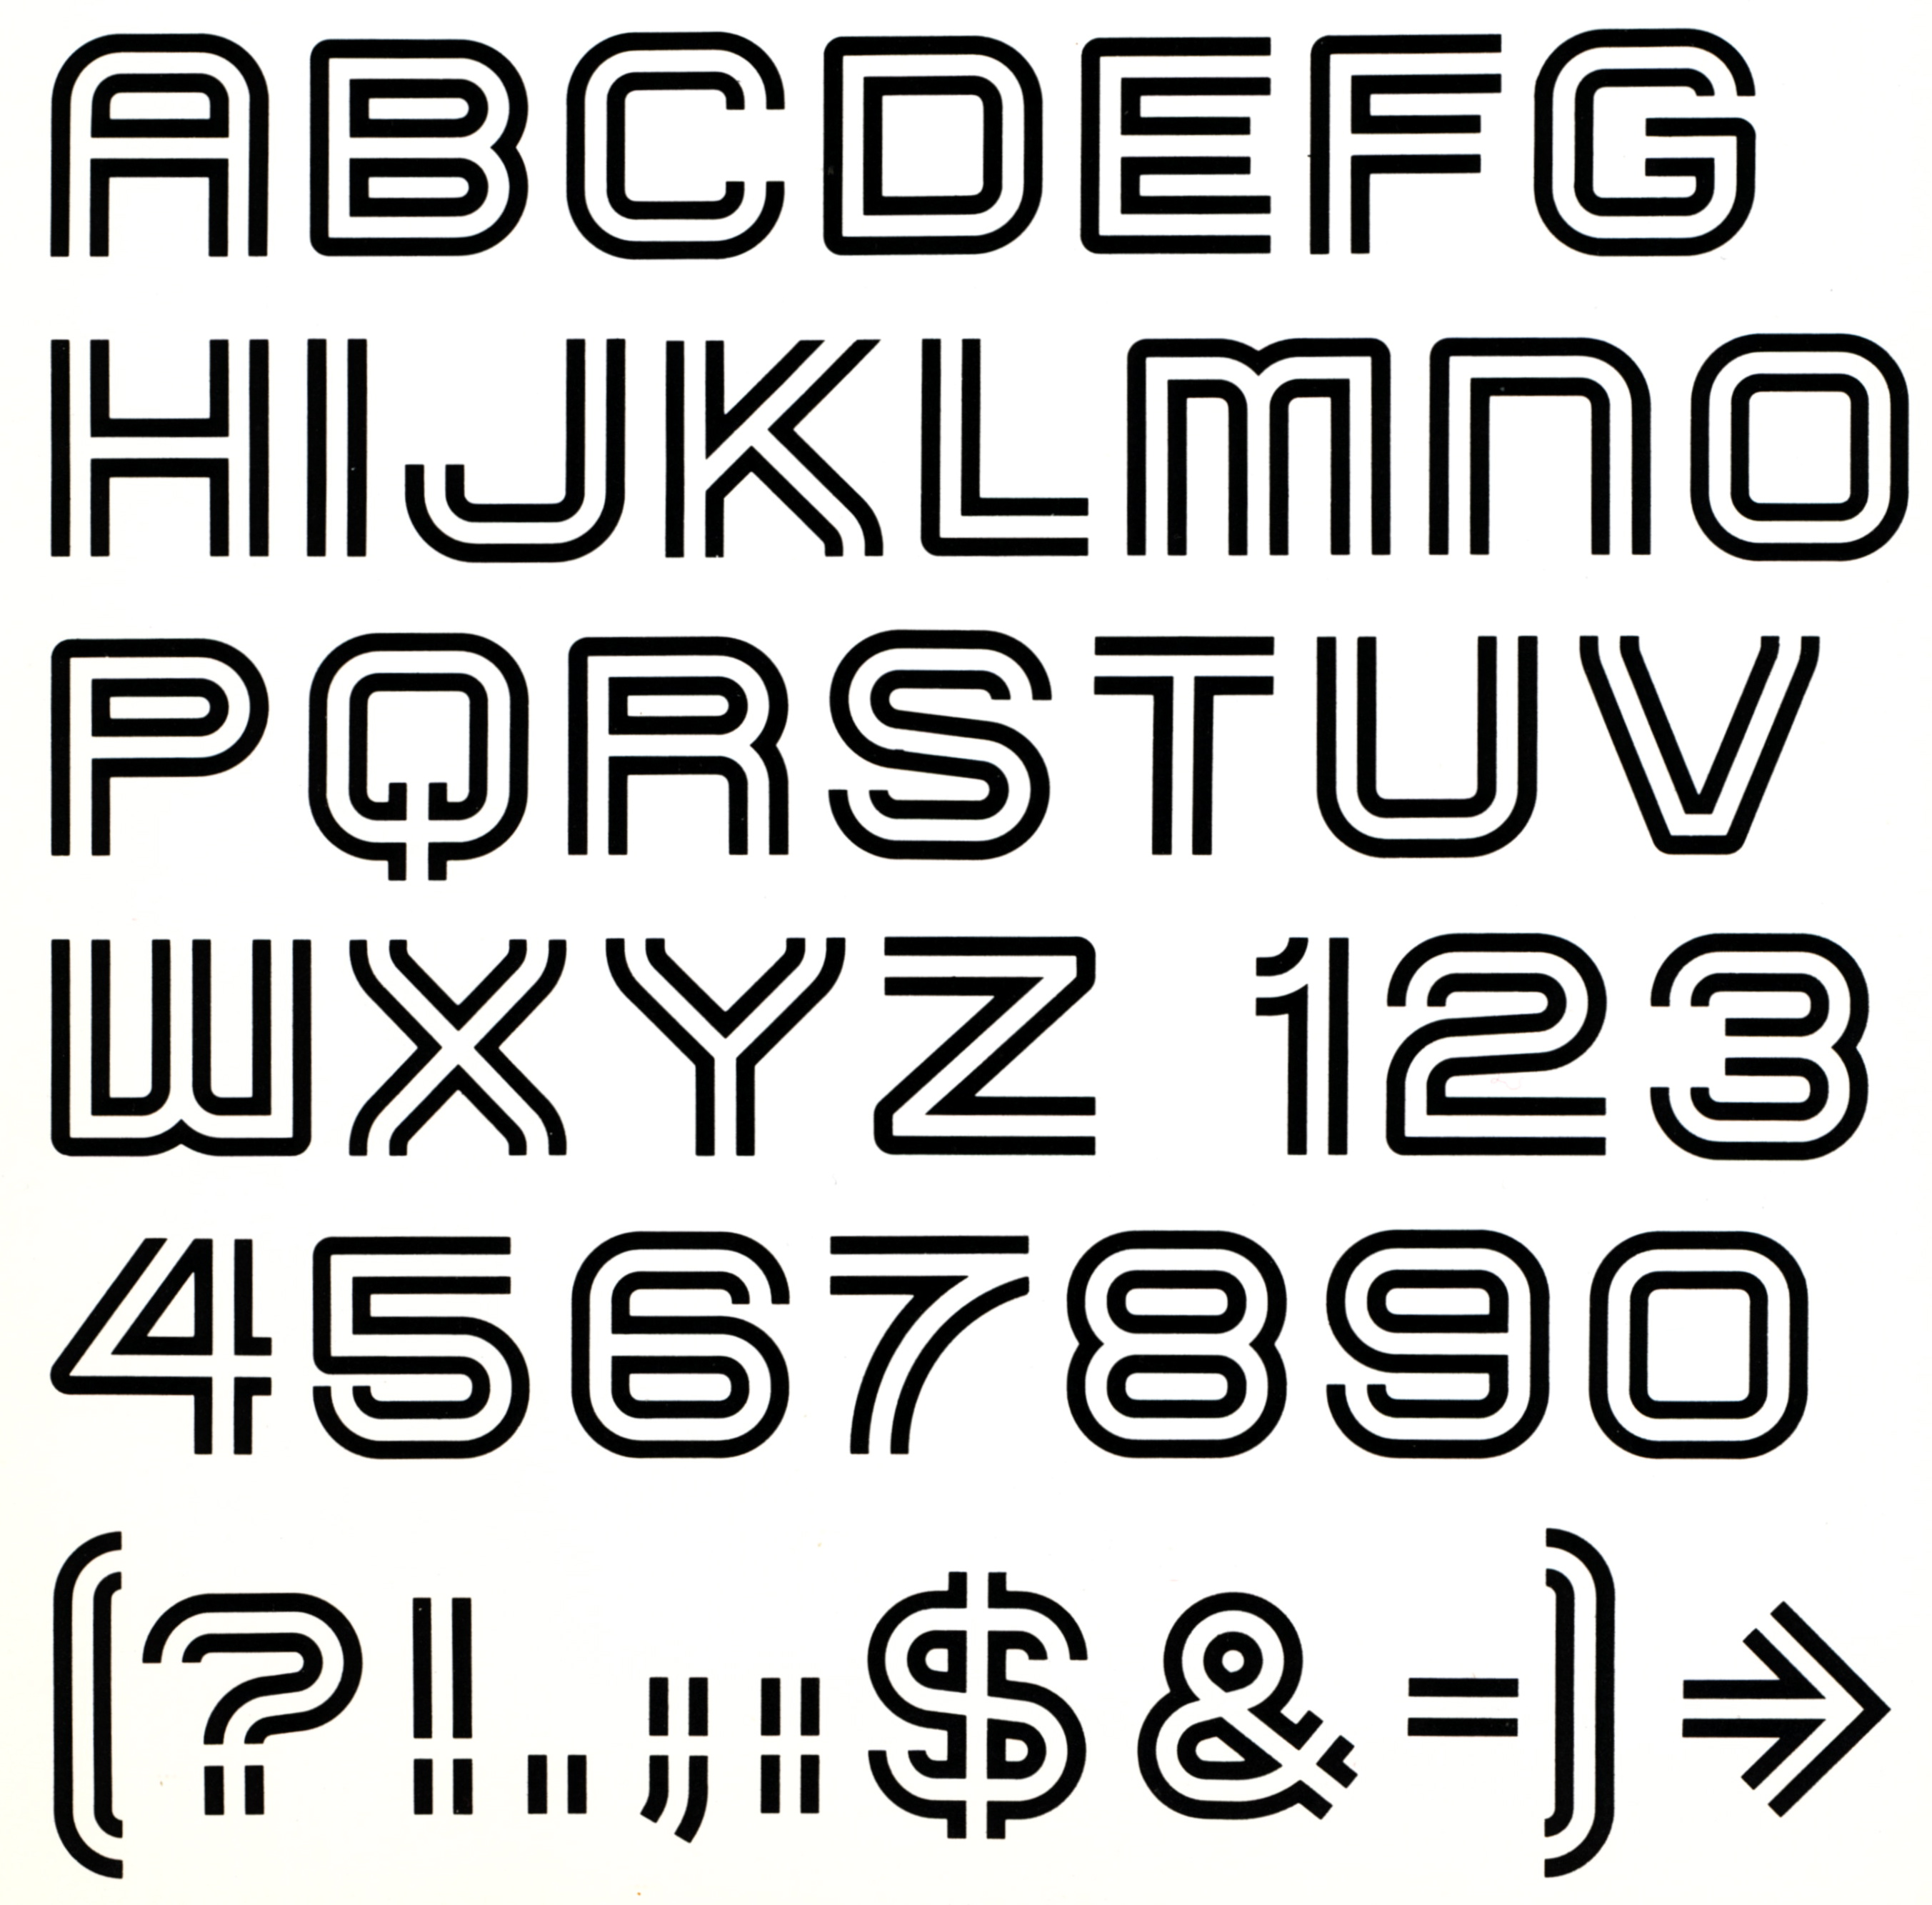 The Oxford typeface alphabet, numbers, and symbols featuring space within the stroke of the characters.